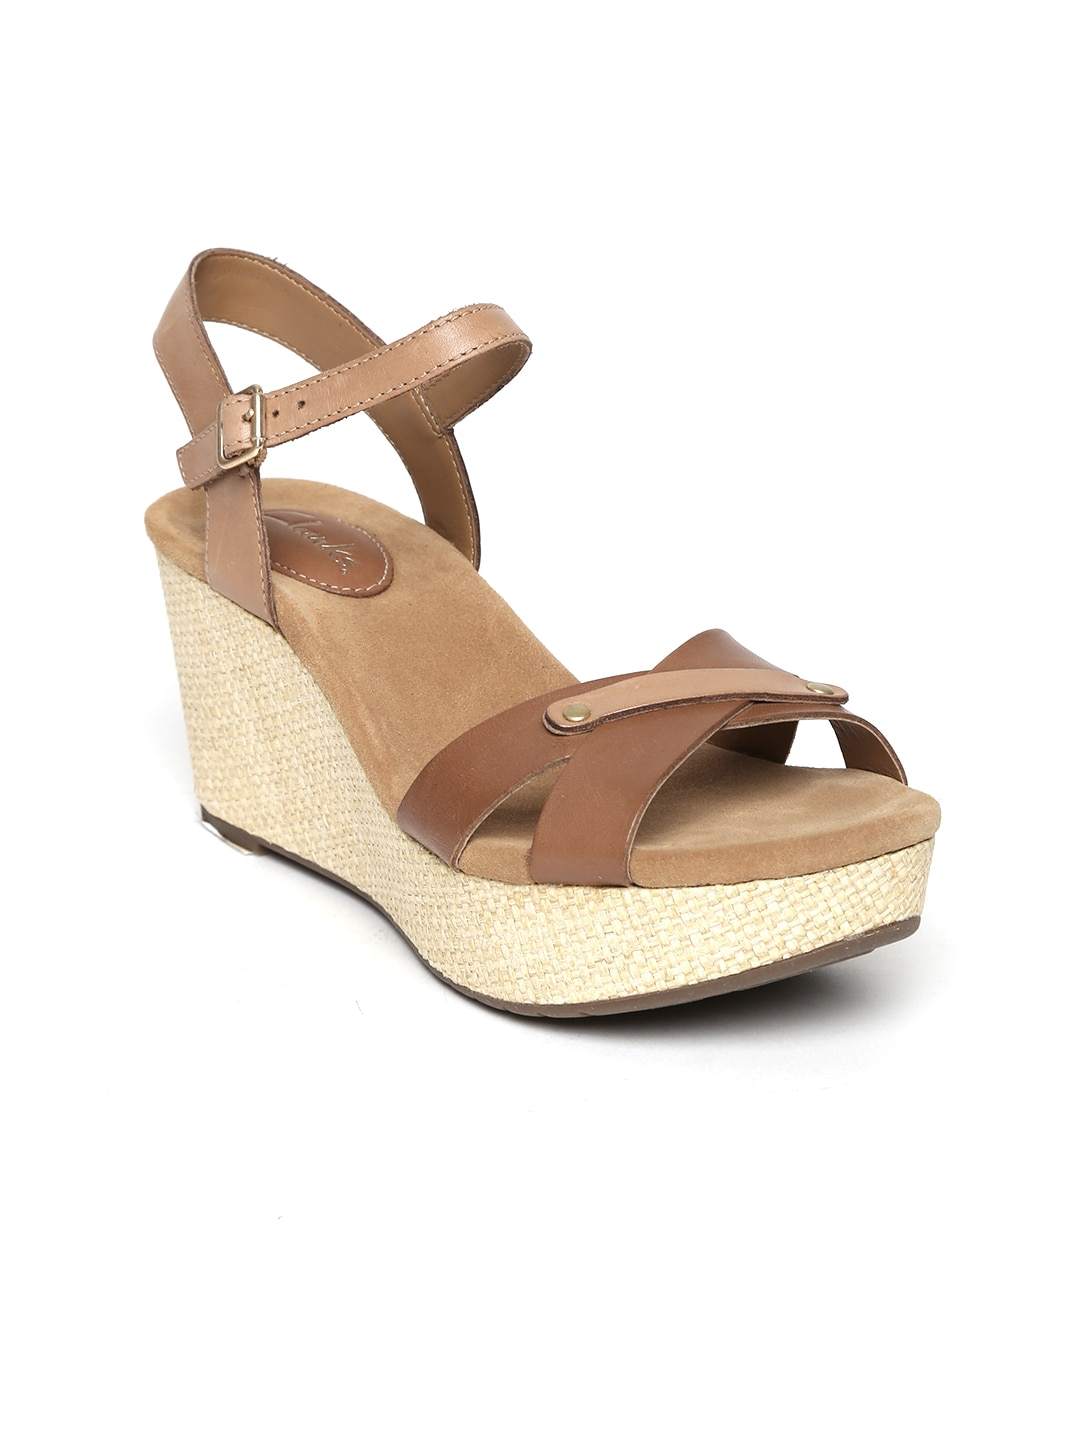 Clarks Women Brown Perfect Laugh Leather Platforms image